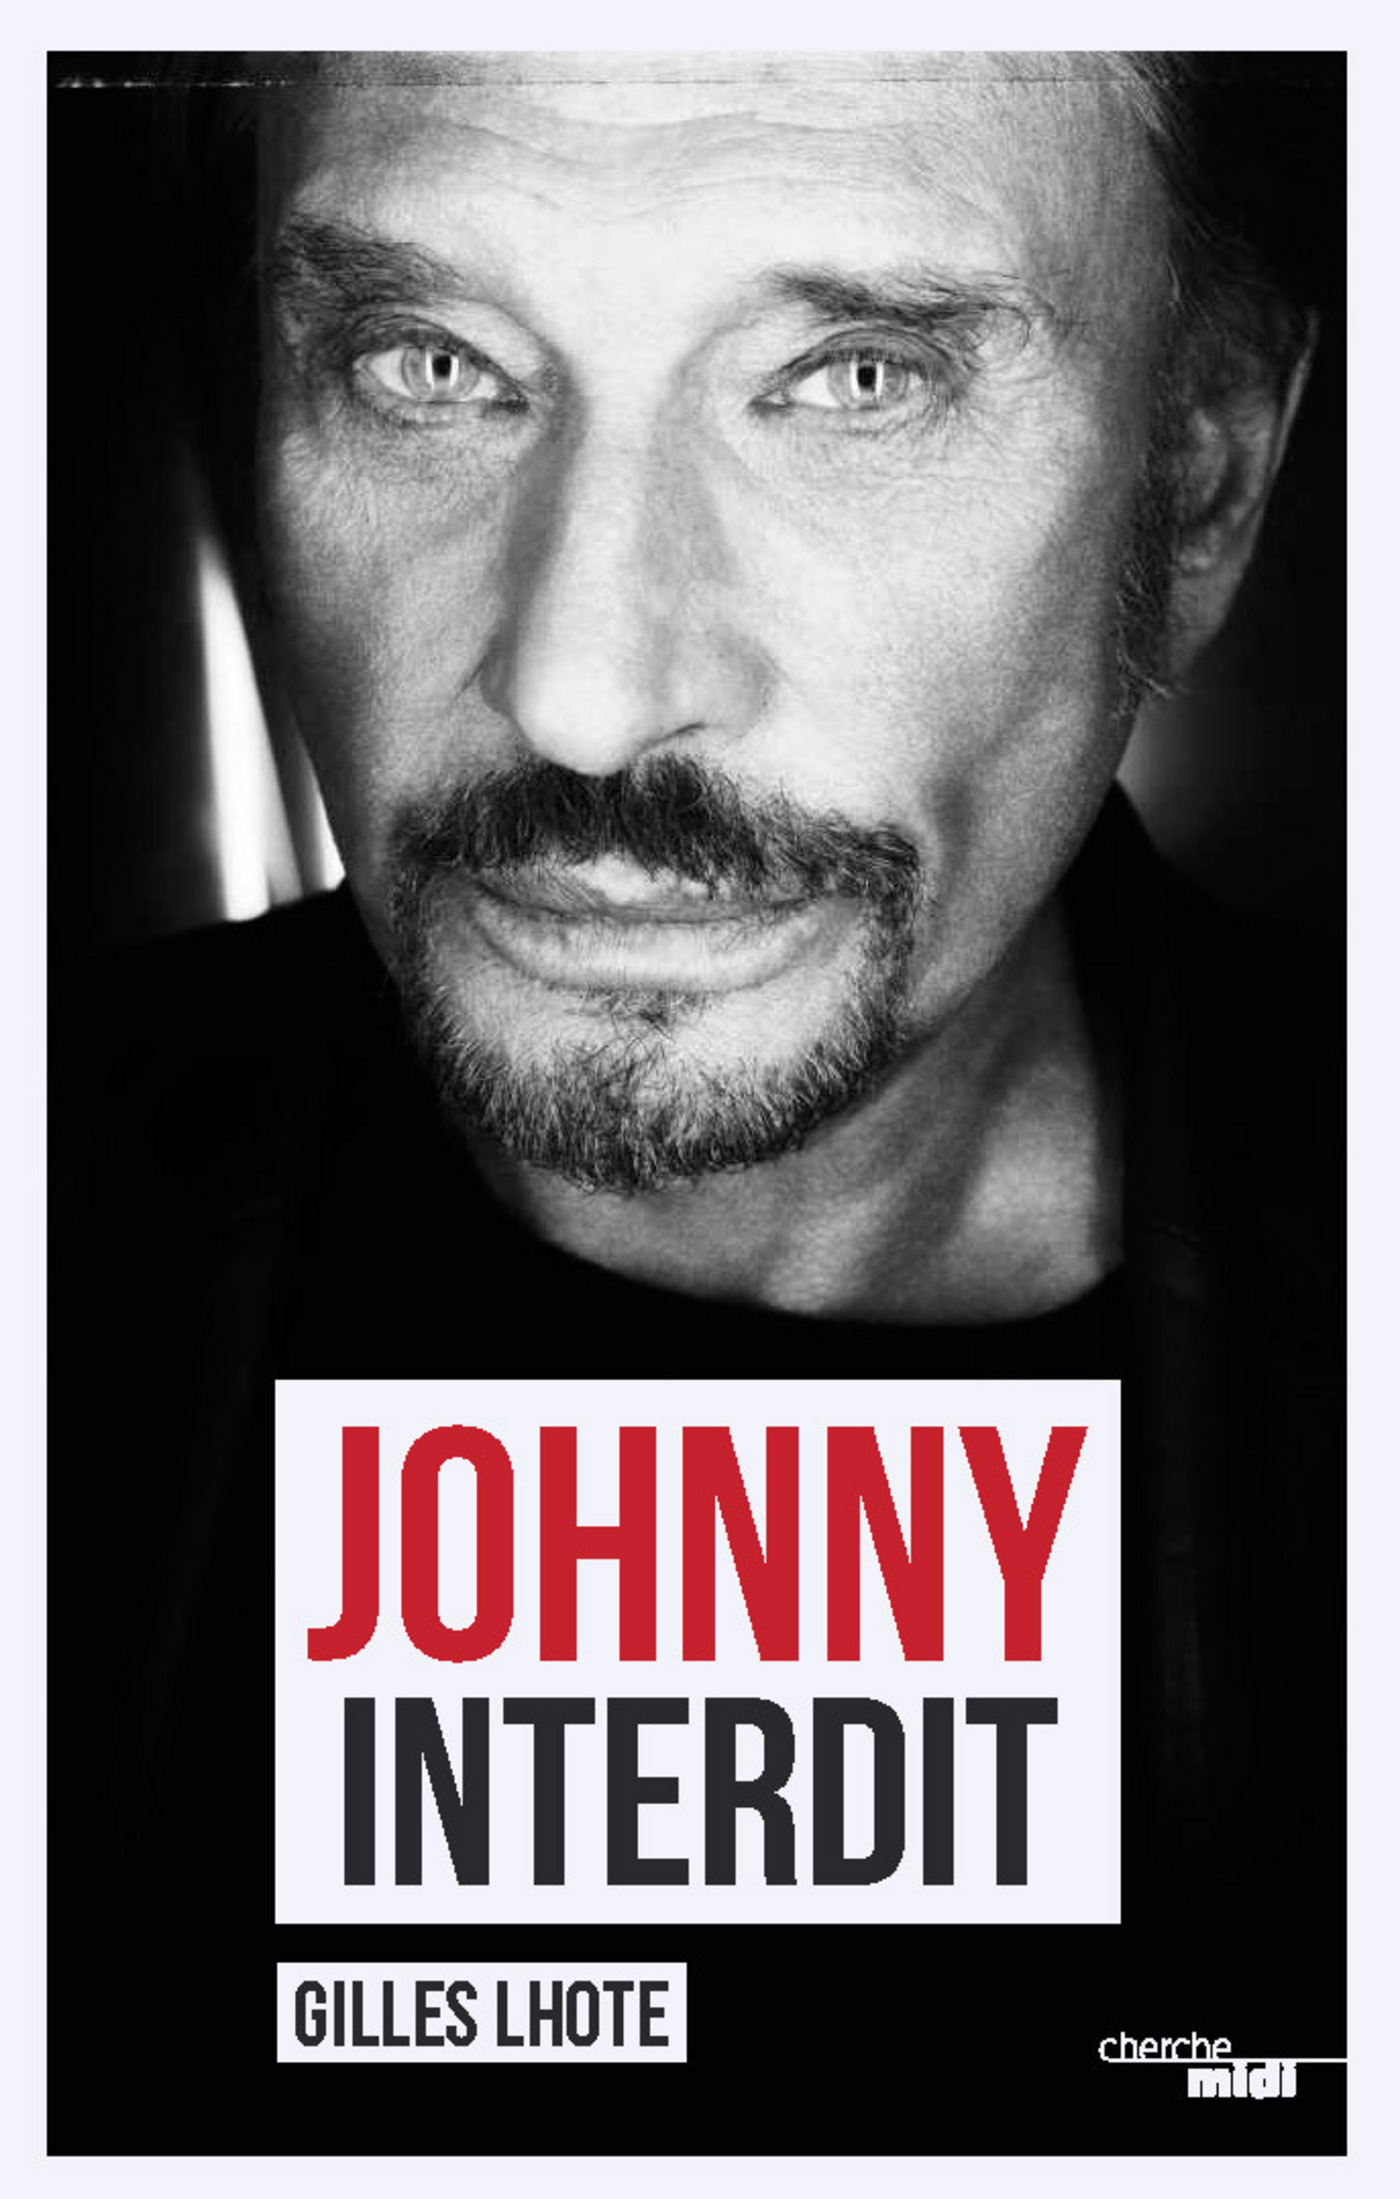 Johnny interdit